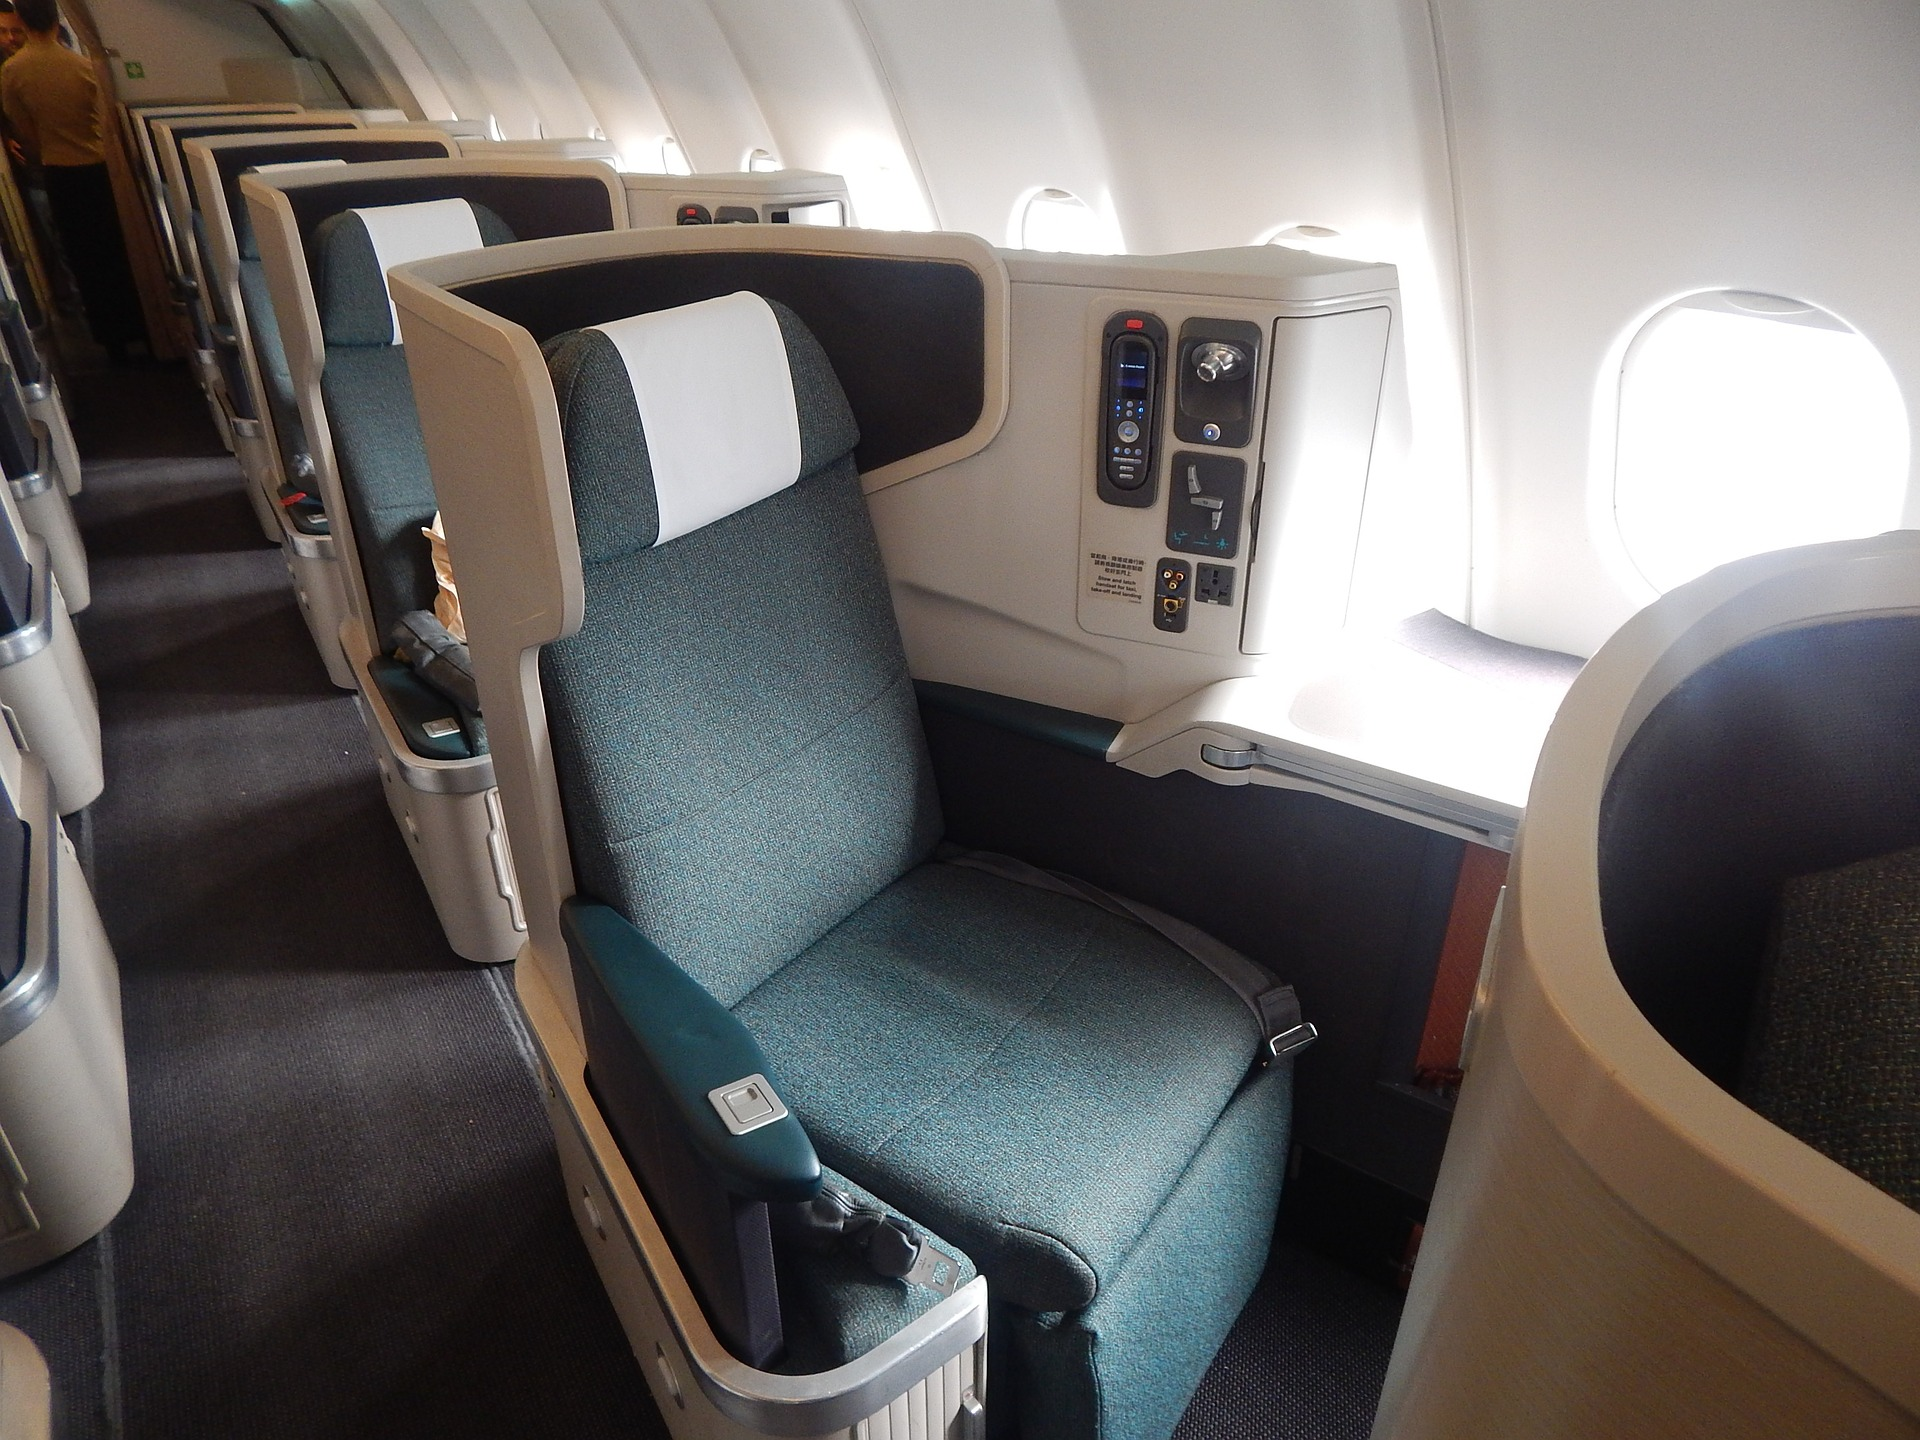 First class seating on airplane